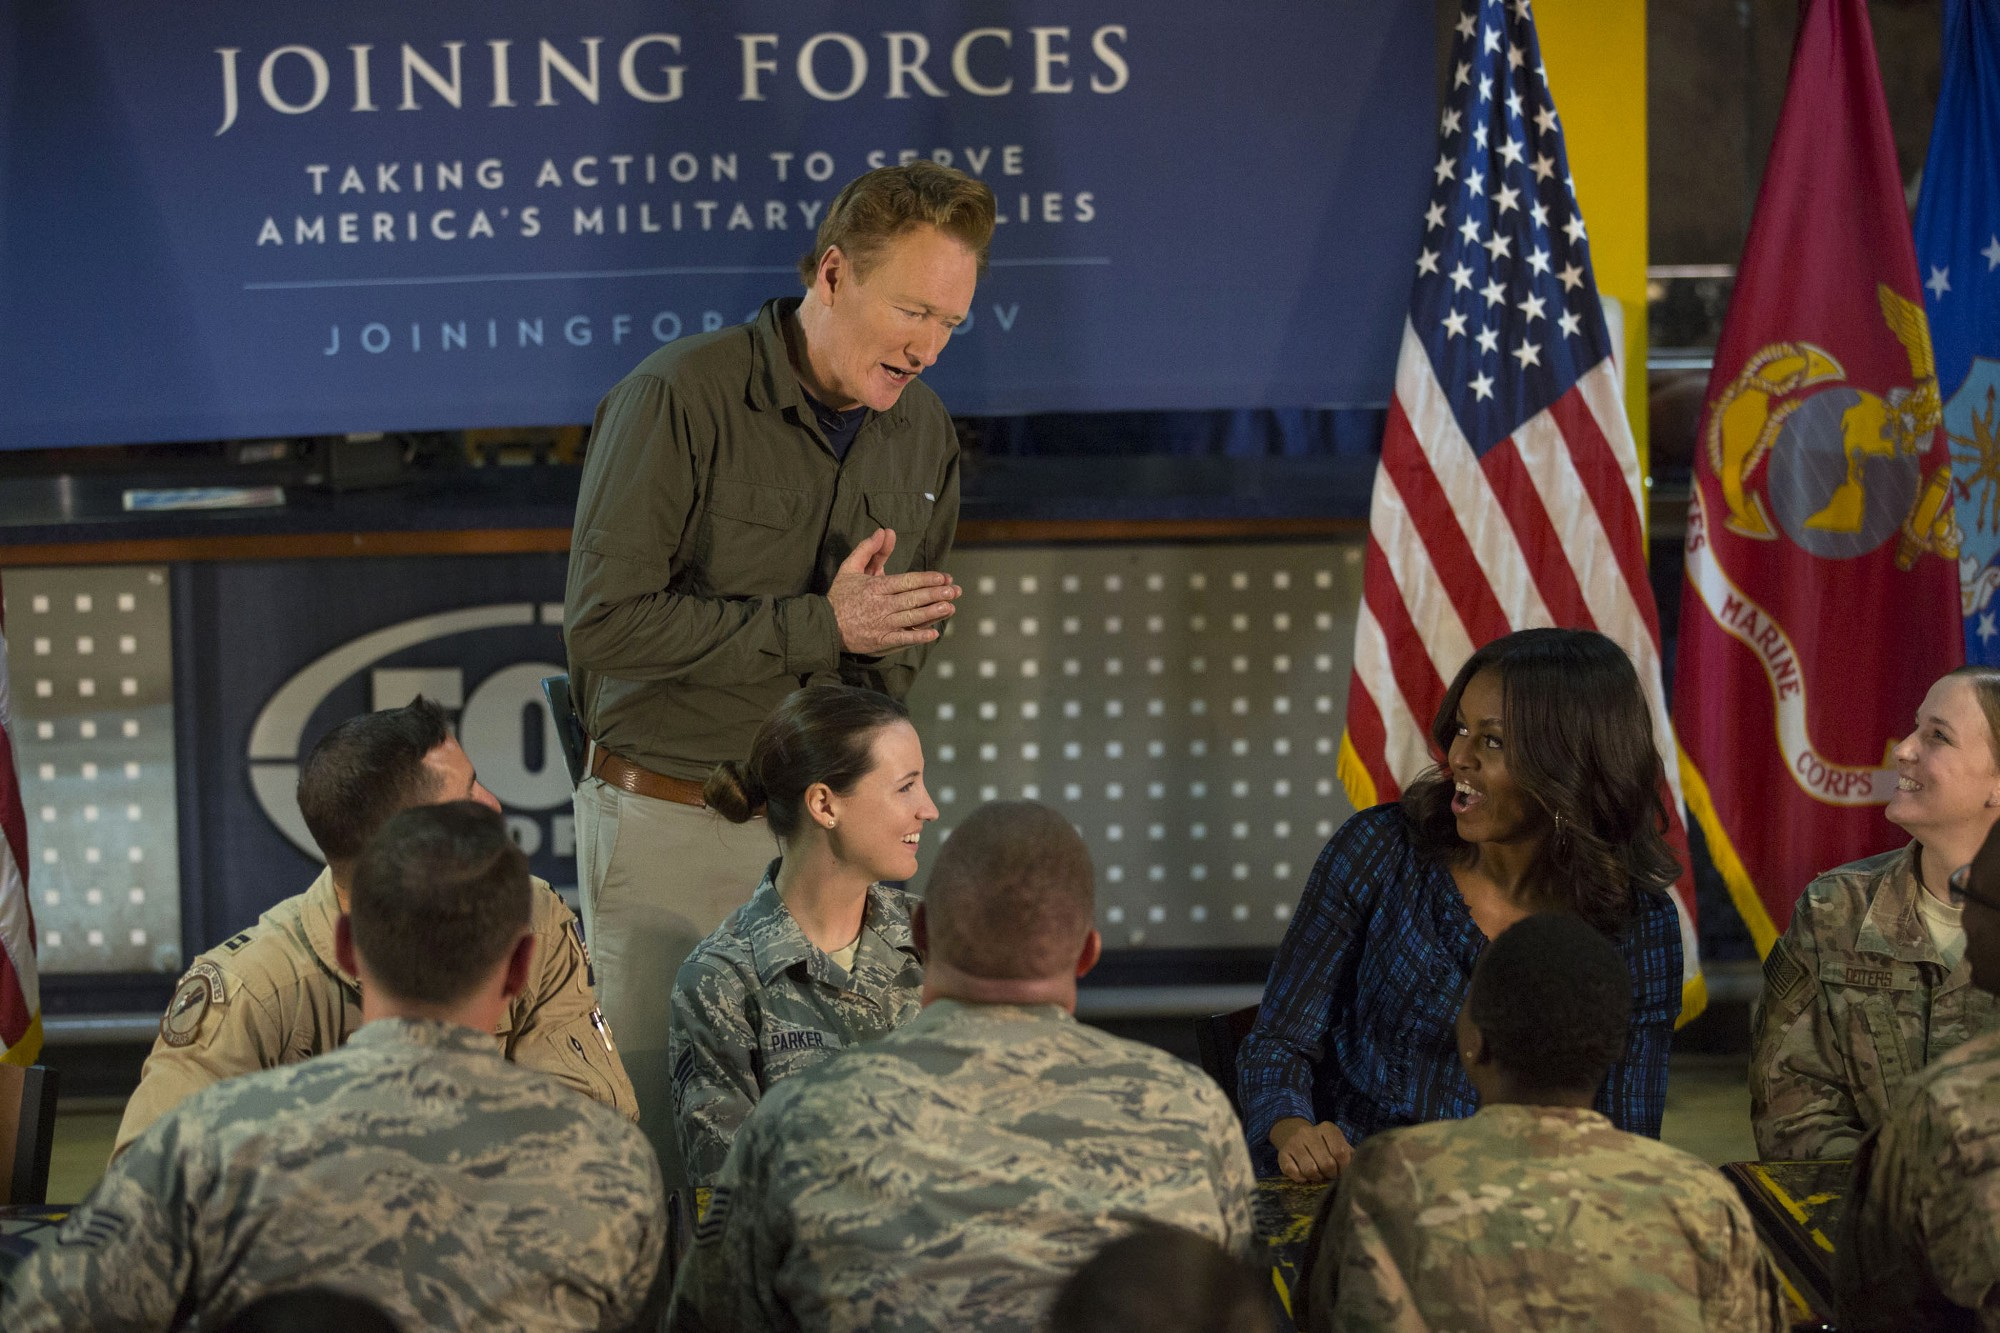 First Lady Michelle Obama and Conan O'Brien participate in a meet and greet with service members, in support of the Joining Forces initiative, at Al Udeid Air Base in Qatar, Nov. 3, 2015. (Official White House Photo by Amanda Lucidon)